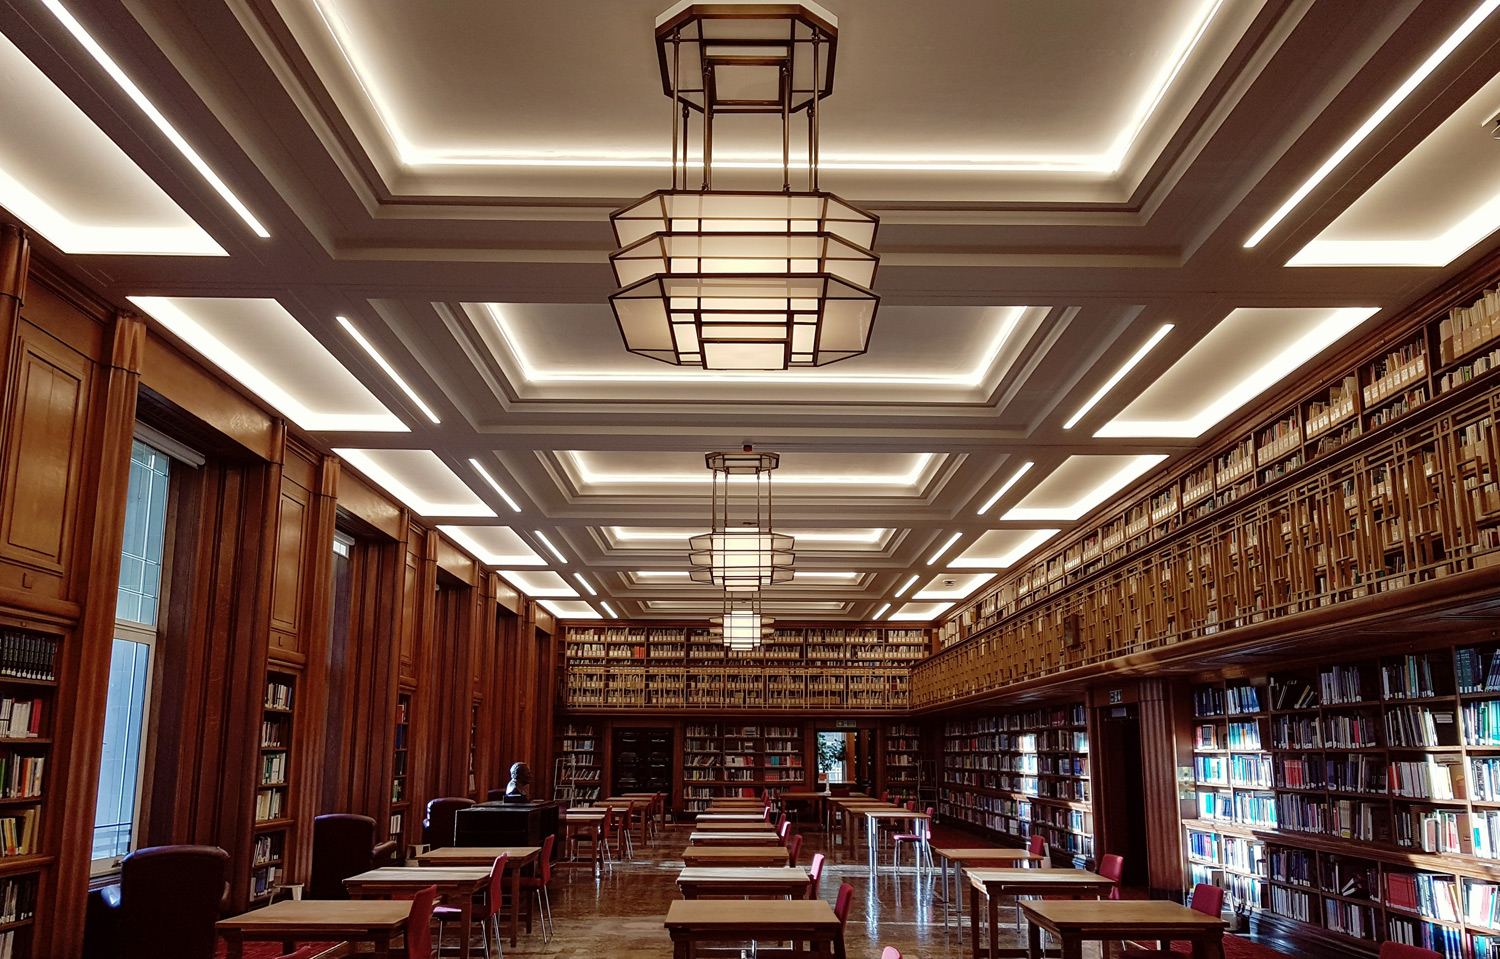 Library reading room in Keppel Street